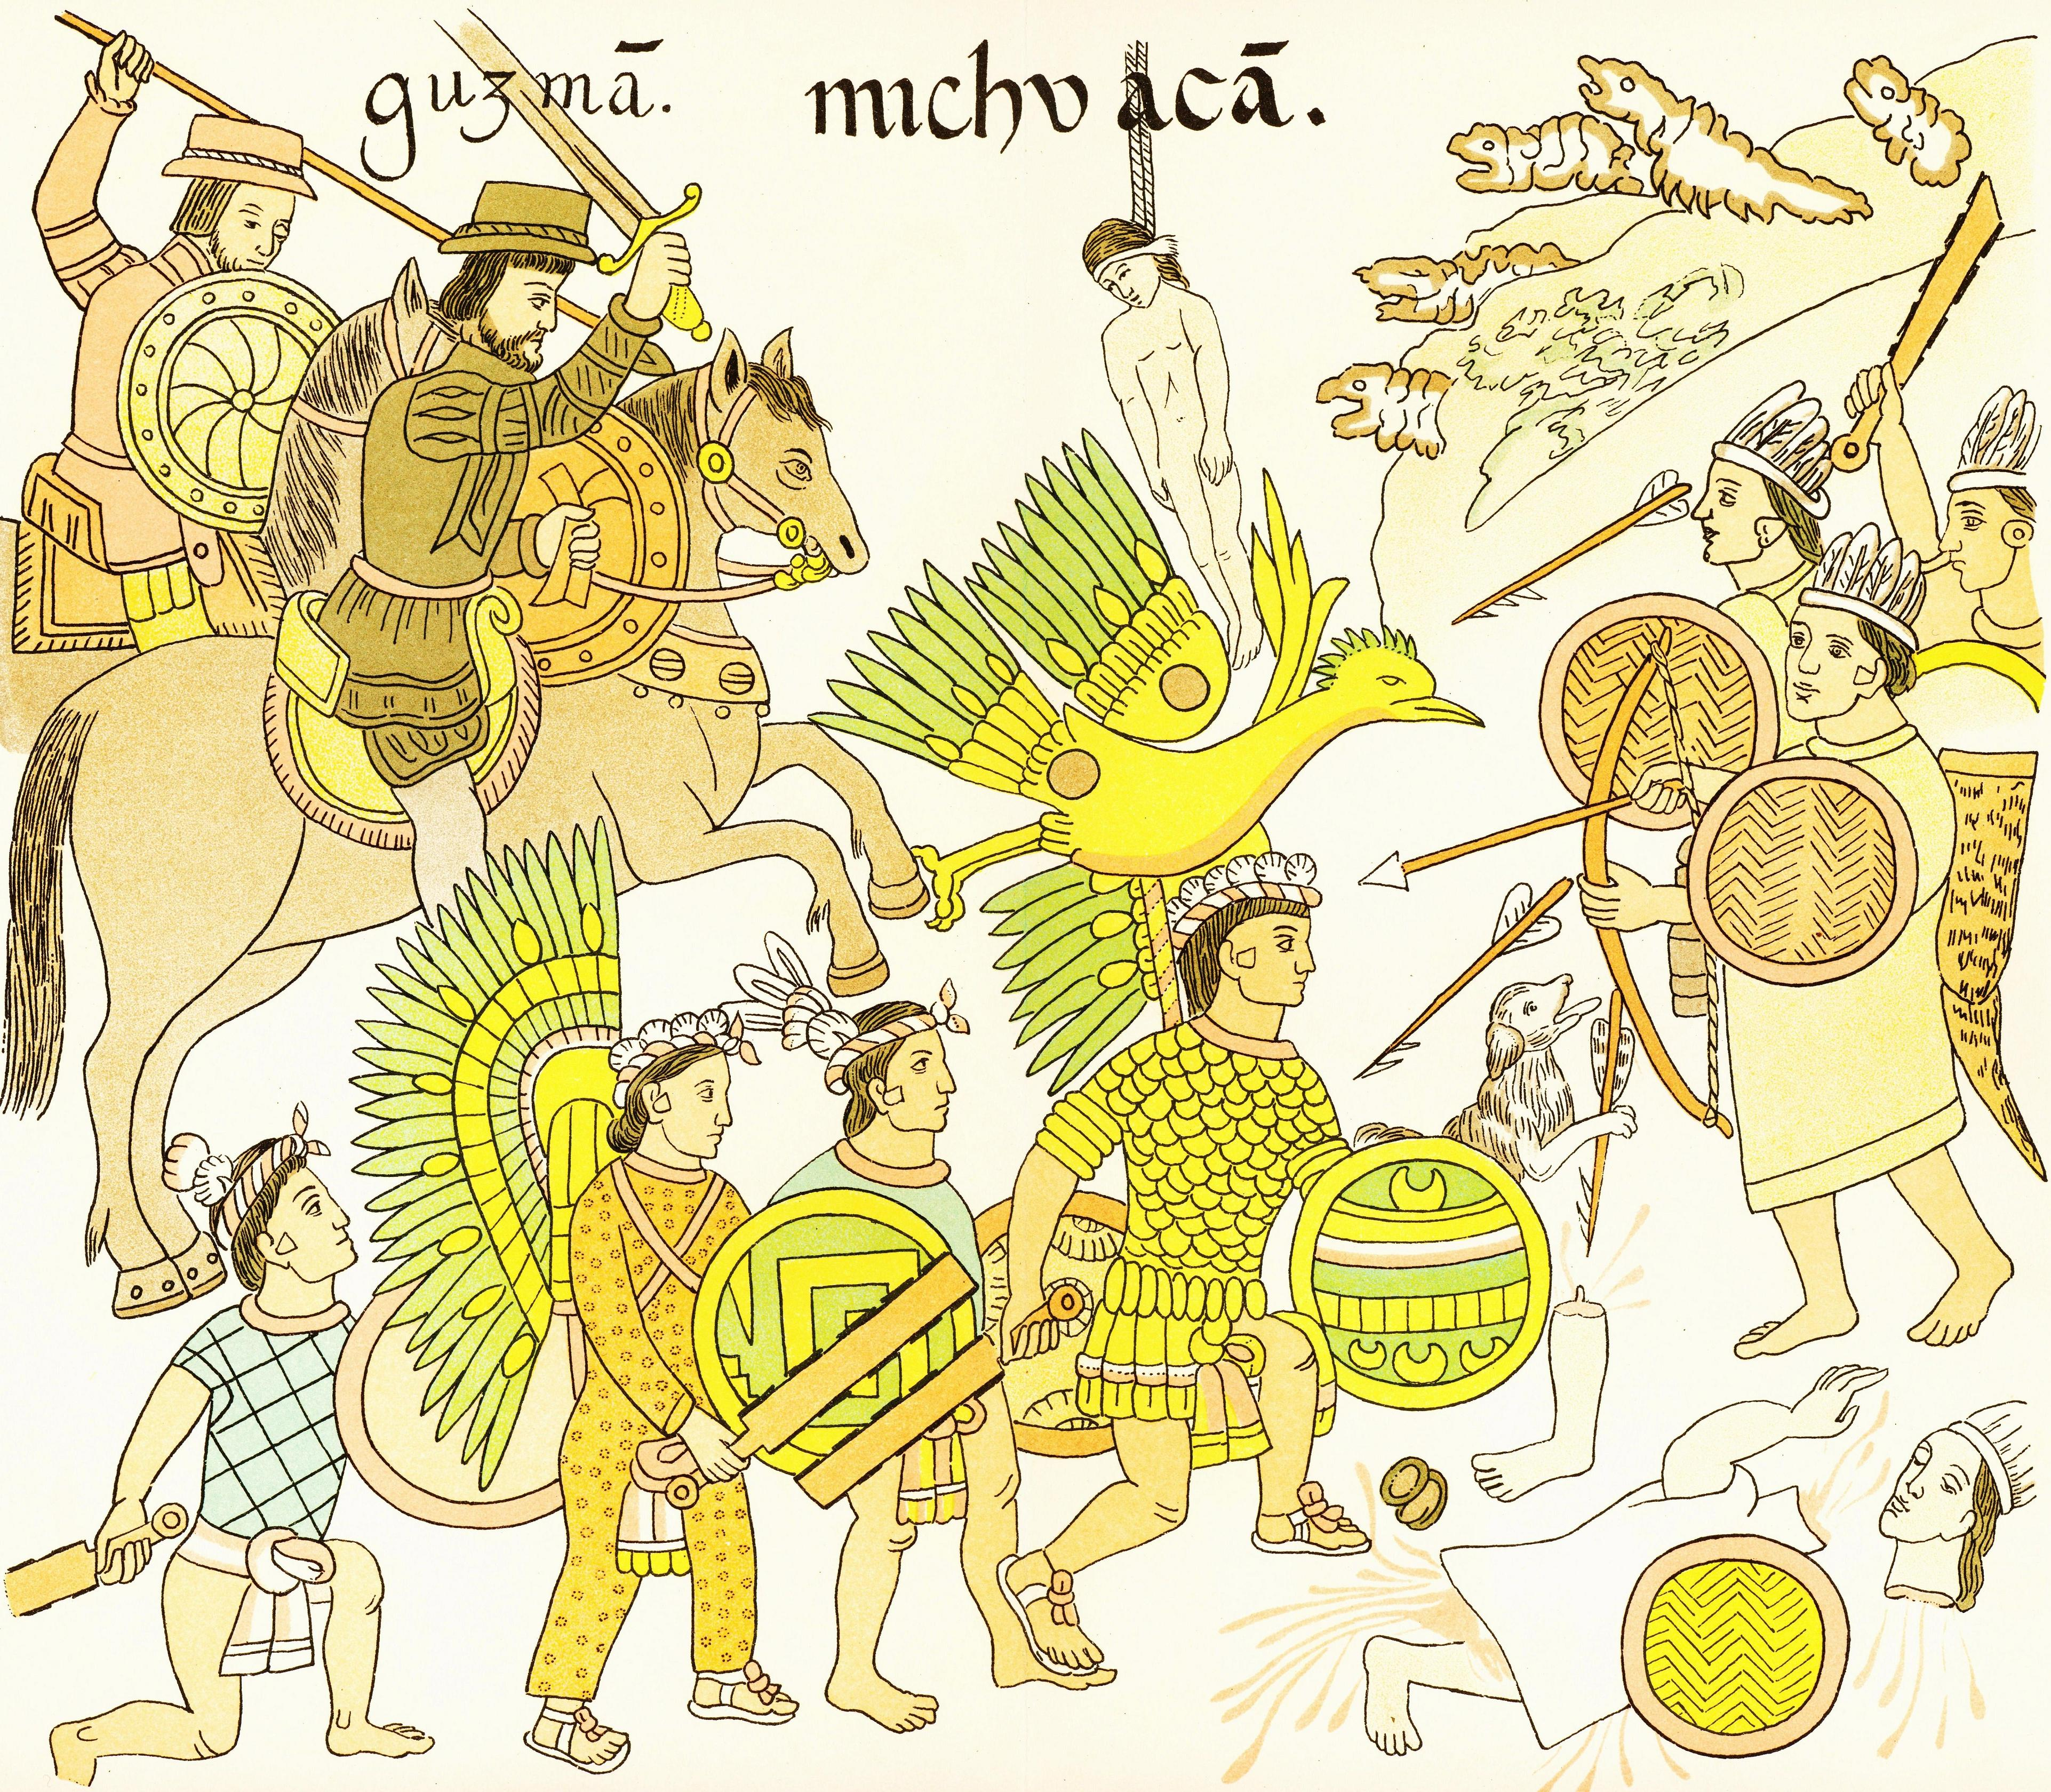 spanish vs aztec weaponry essay With just a few hundred men, the spanish were able to subdue the aztec and inca and the weapons and armor of the conquistadors led to their success.